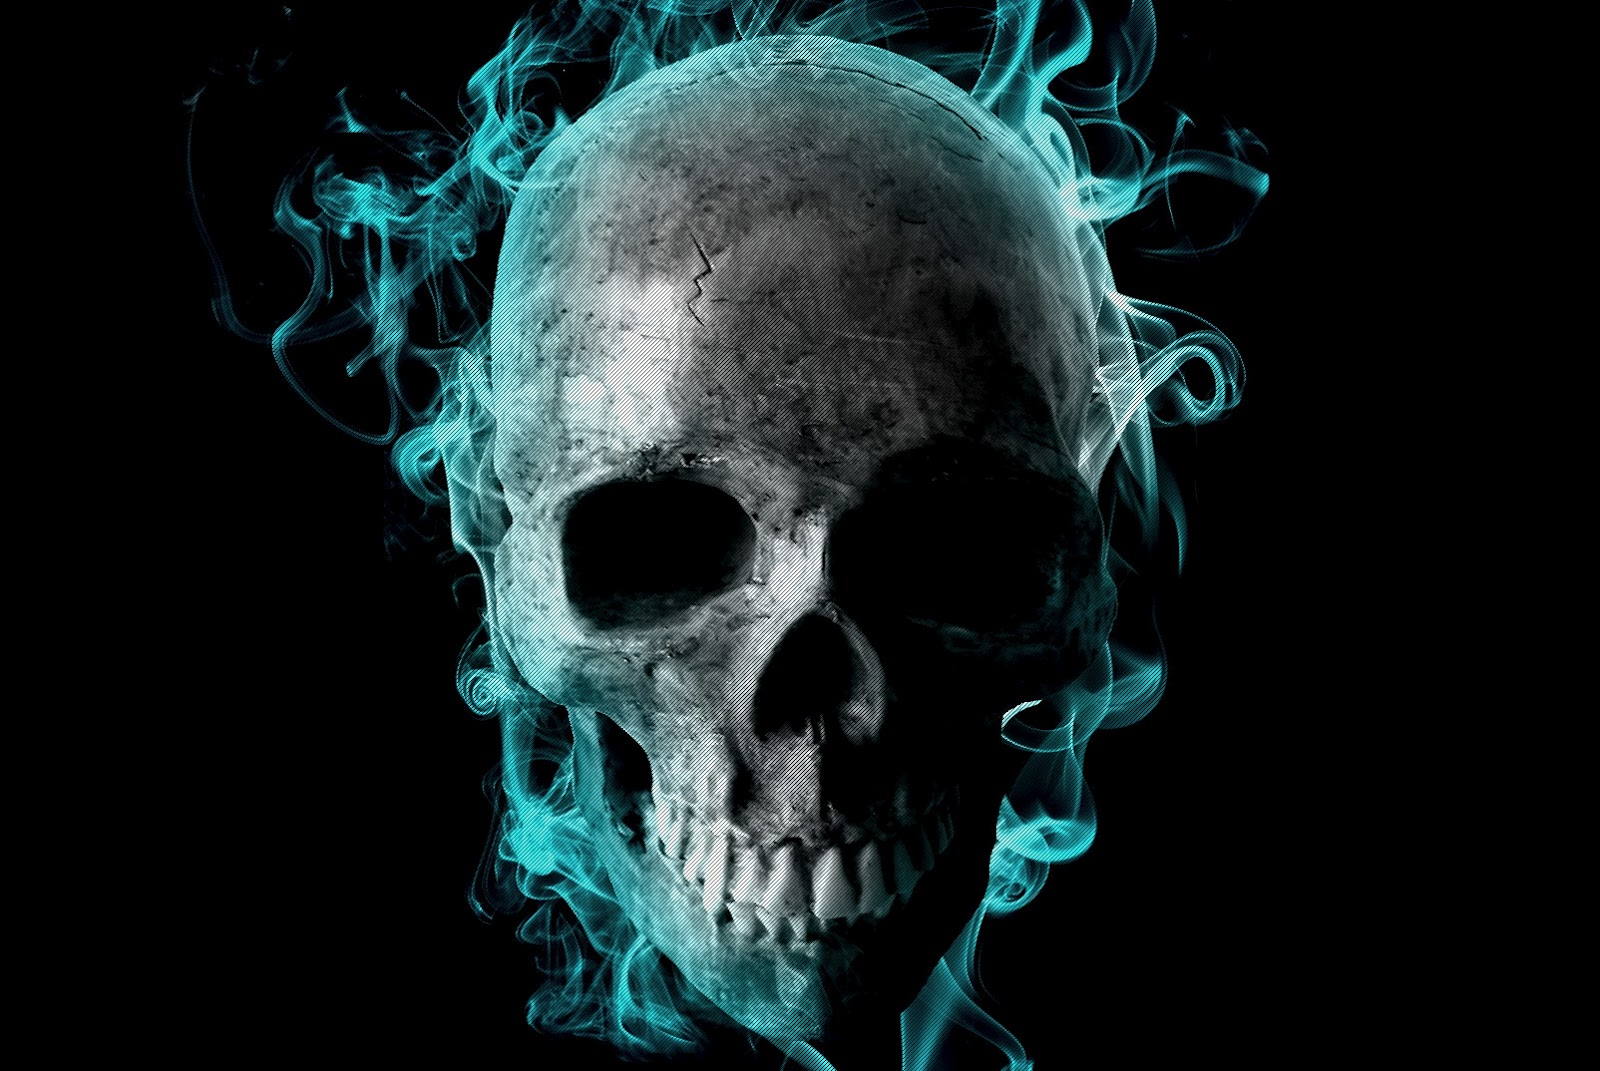 skull backgrounds Video Search Engine at Search com